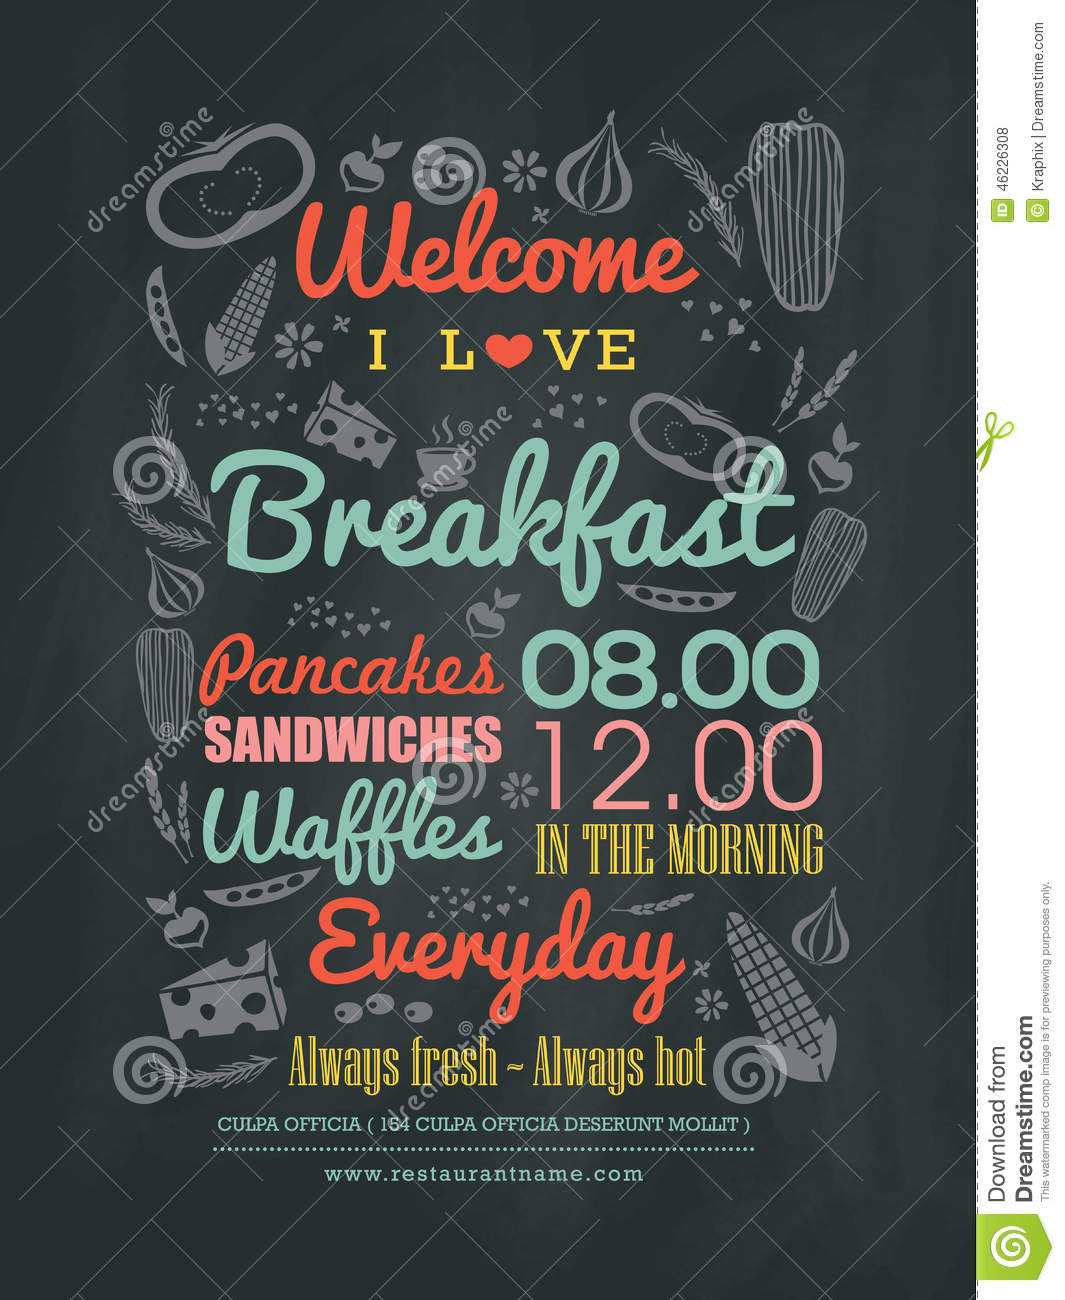 ... Menu Design Typography On Chalk Board Stock Vector - Image: 46226308